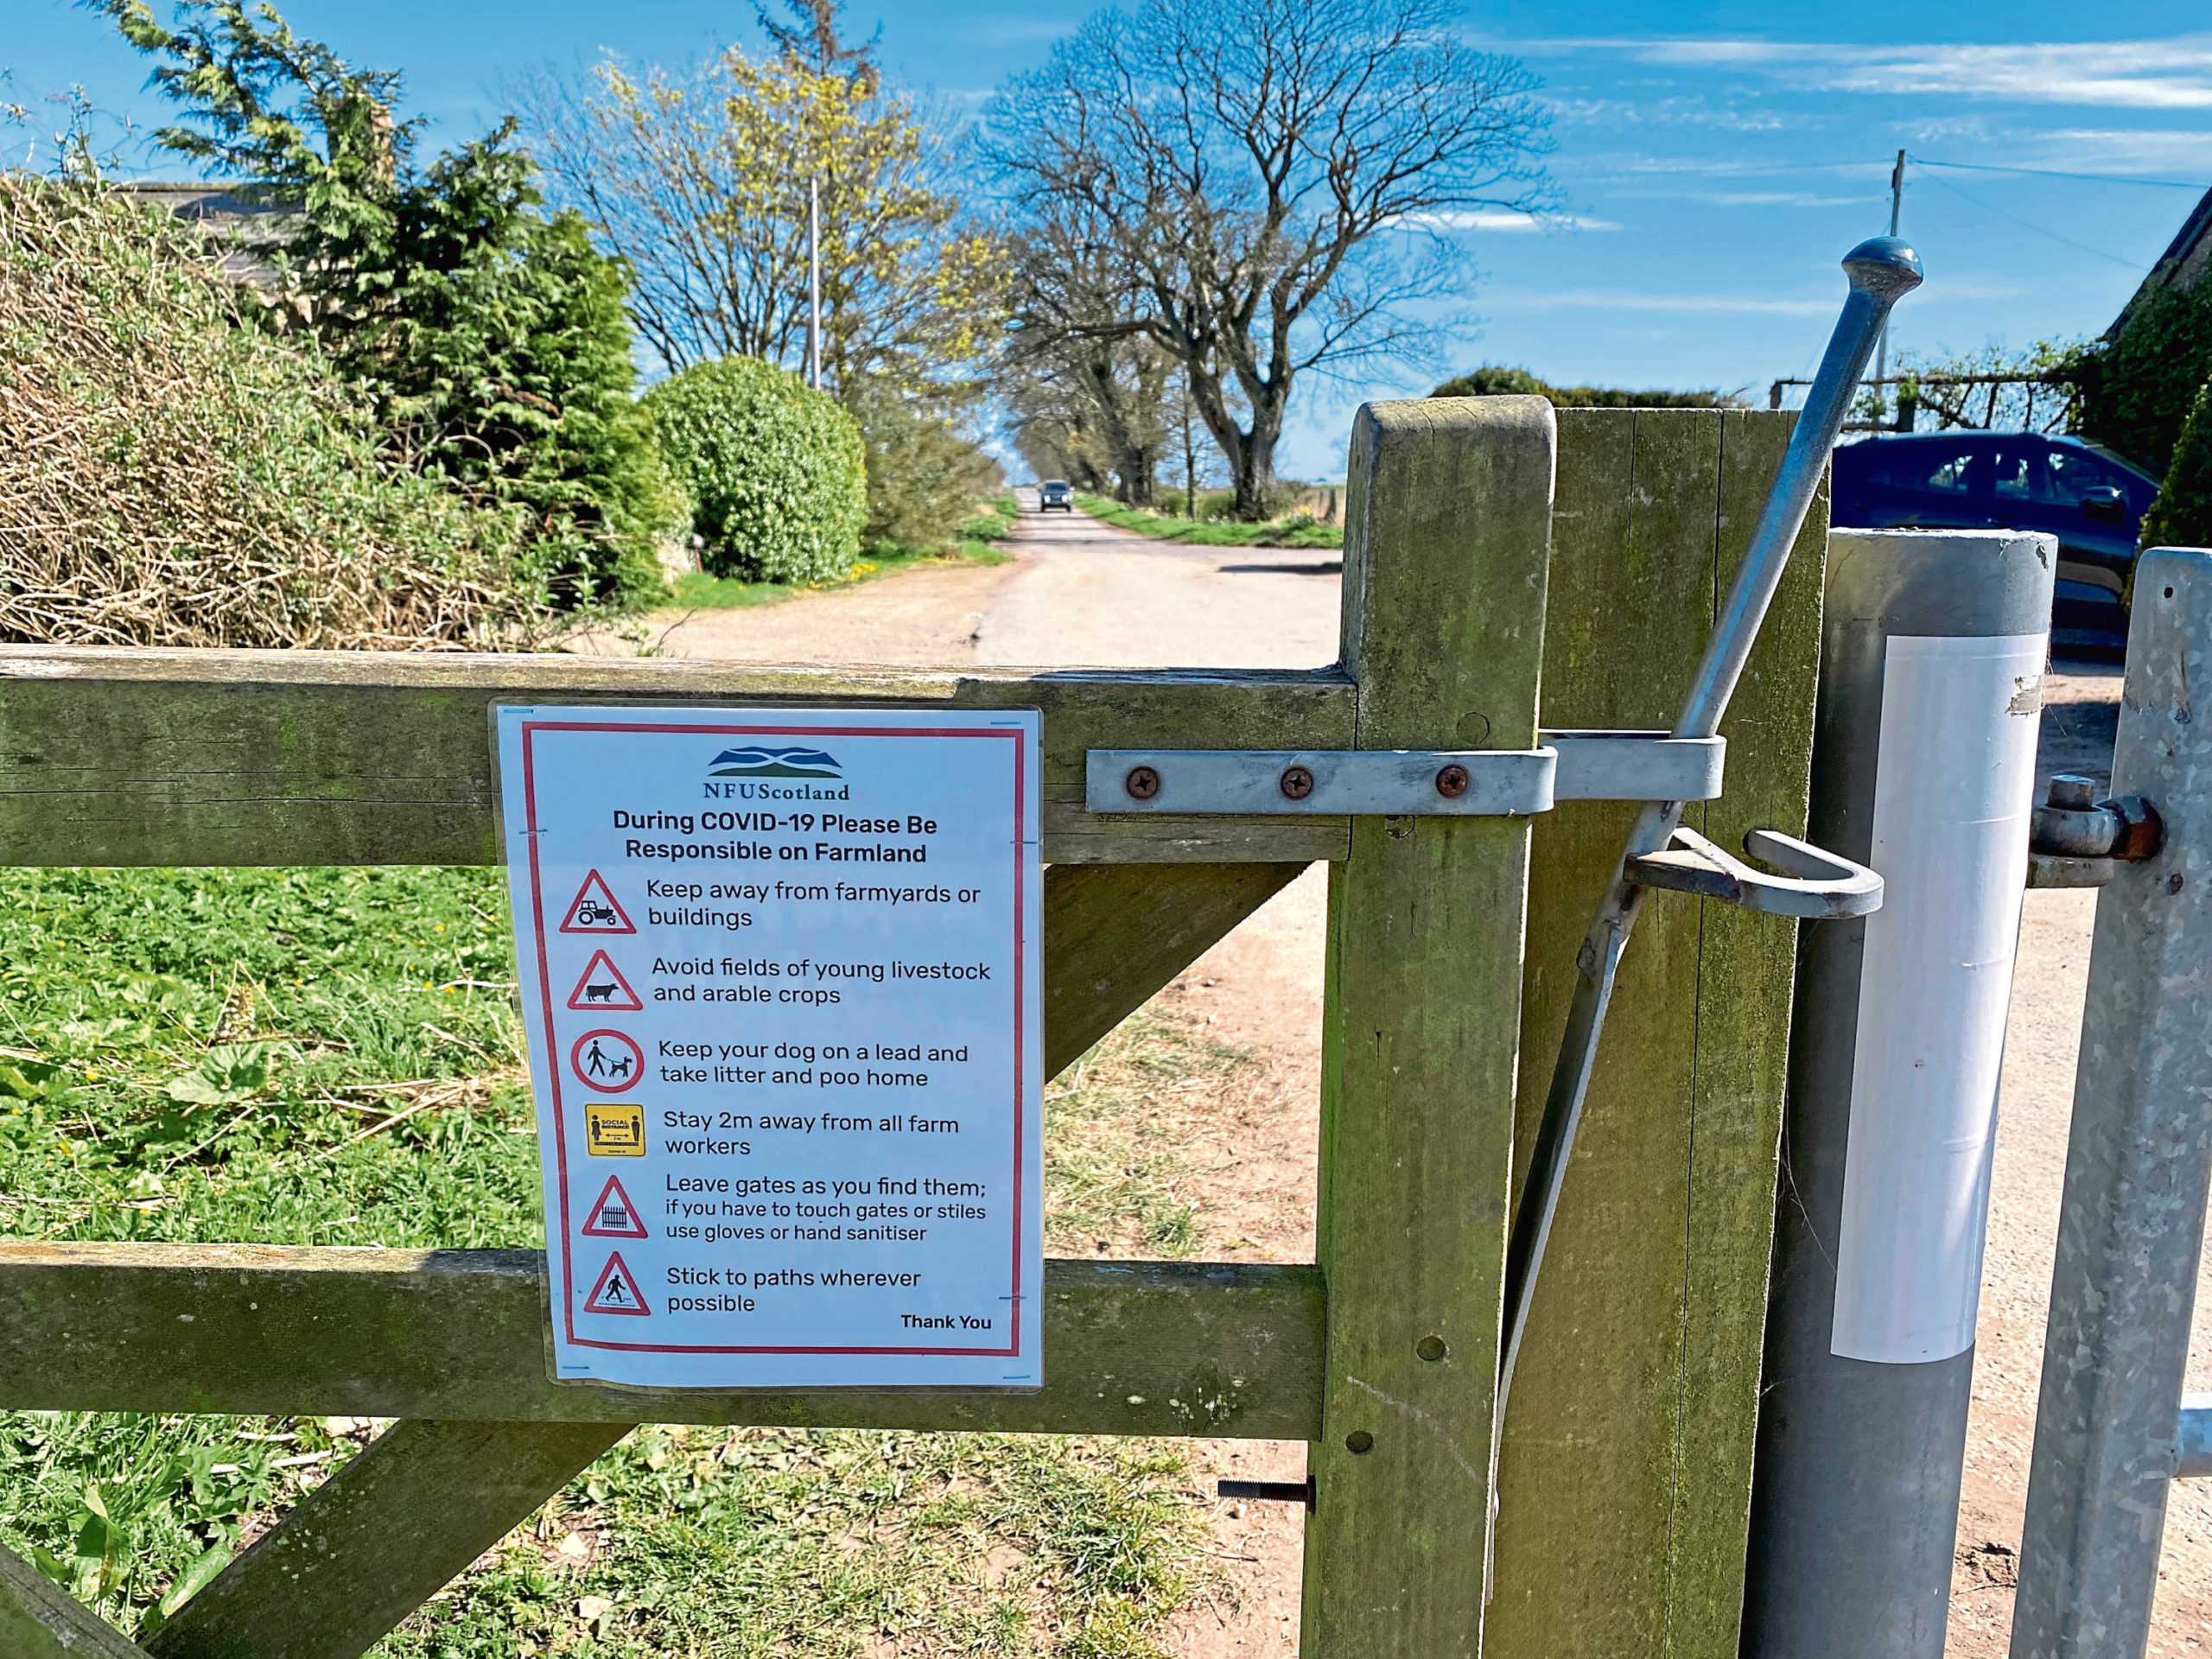 The sign can be downloaded from the NFUS website.